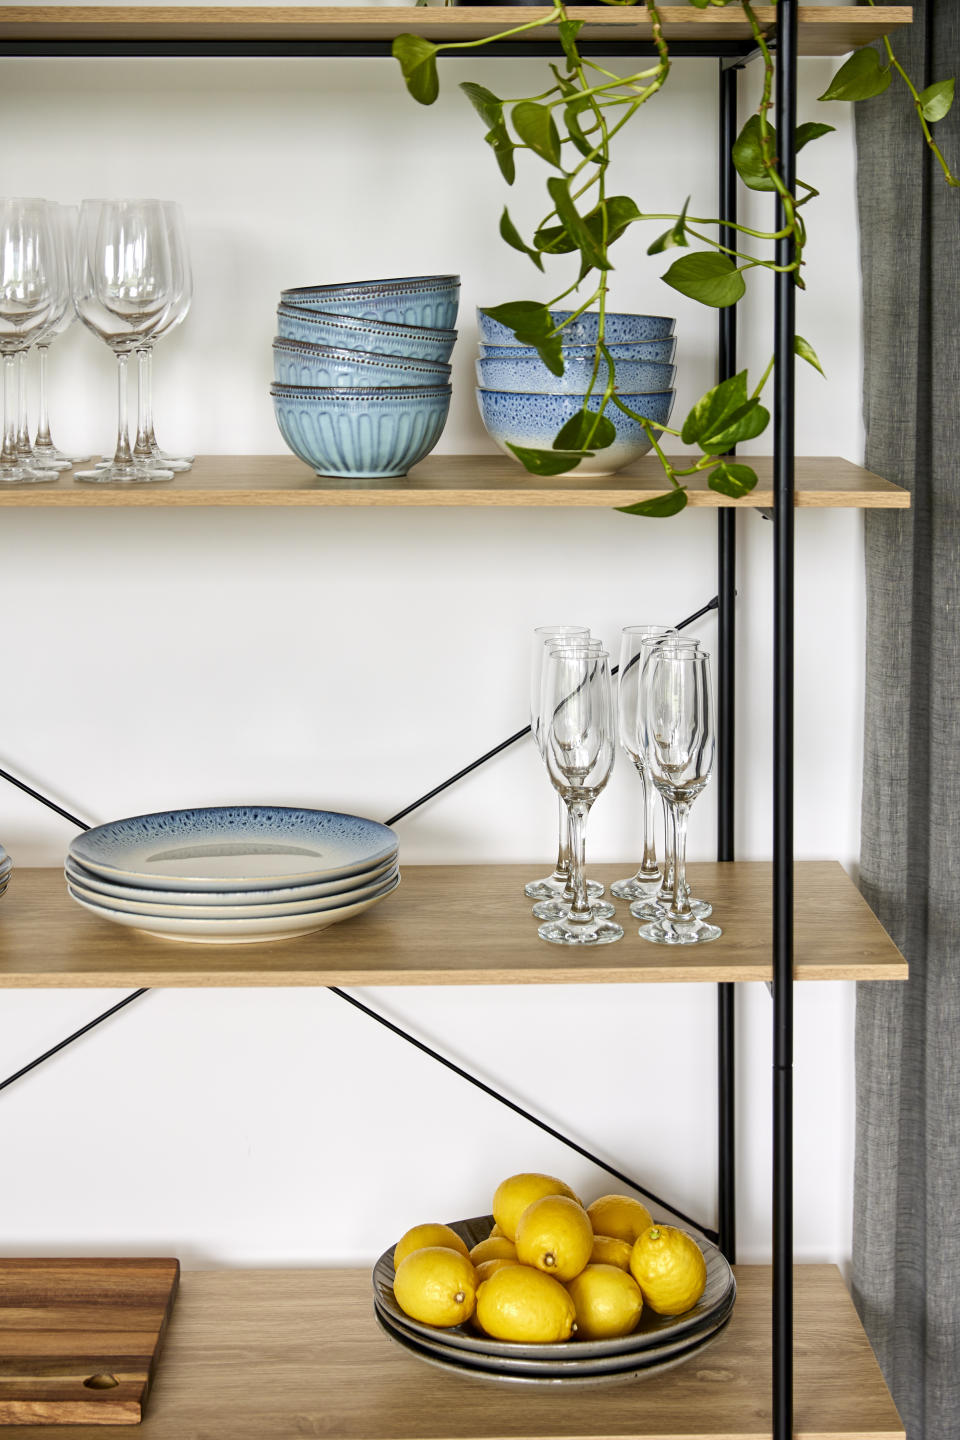 There will be a wide range of items in the new collection from decor to big furniture items like shelving units. Photo: Supplied